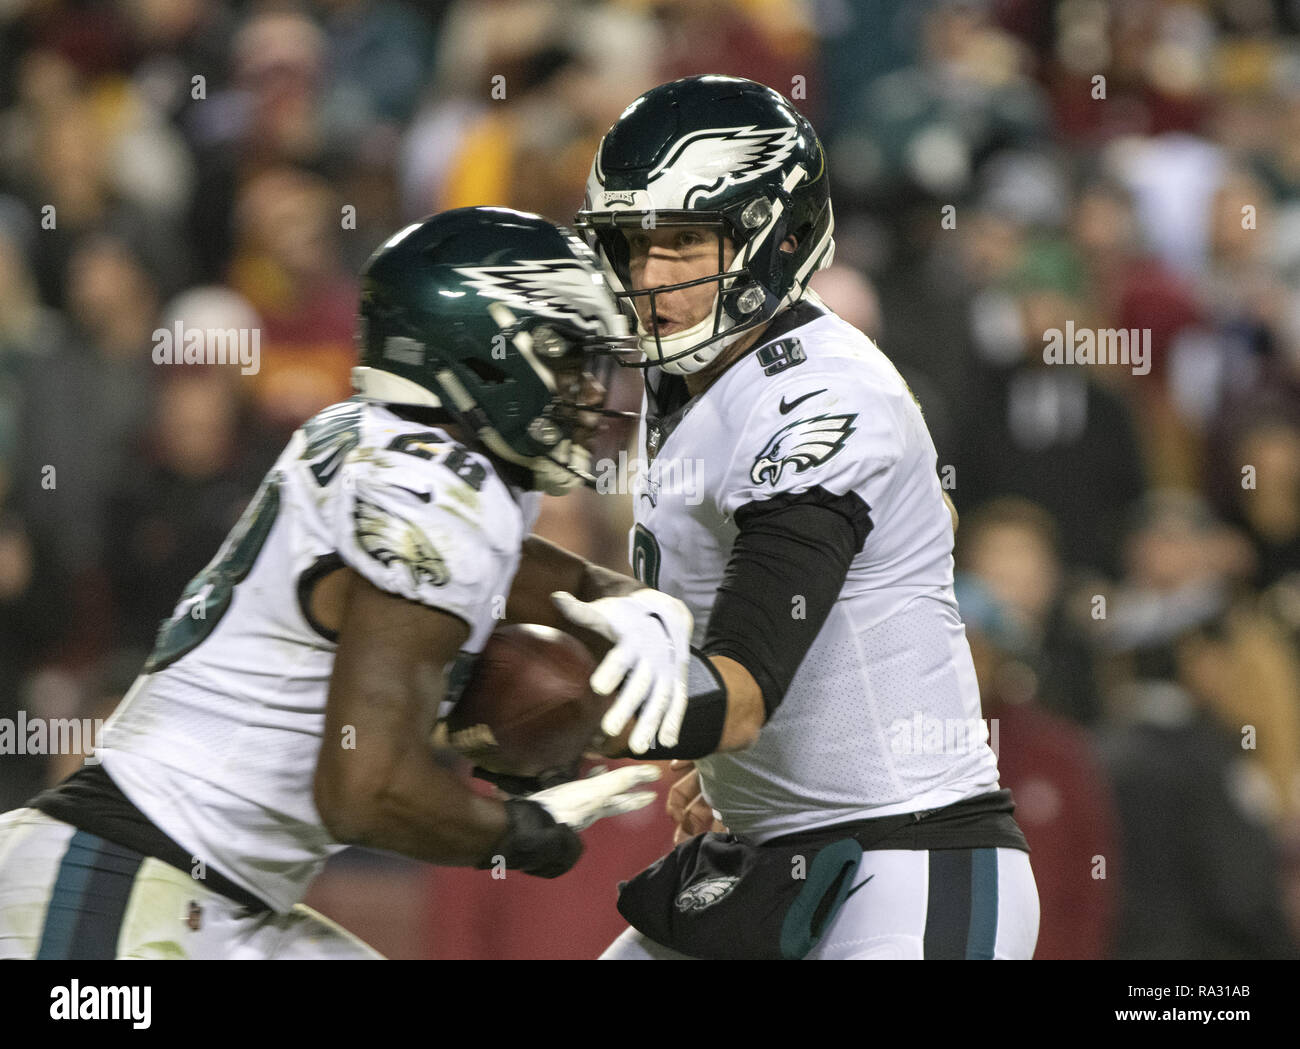 Landover, Maryland, USA. 30th Dec, 2018. Philadelphia Eagles quarterback Nick Foles (9) hands-off to running back Wendell Smallwood (28) in fourth quarter action against the Washington Redskins at FedEx Field in Landover, Maryland on December 30, 2018. The Eagles won the game 24 - 0 and their victory coupled with the Viking loss allowed them to advance to the NFC playoffs Credit: Ron Sachs/CNP/ZUMA Wire/Alamy Live News - Stock Image